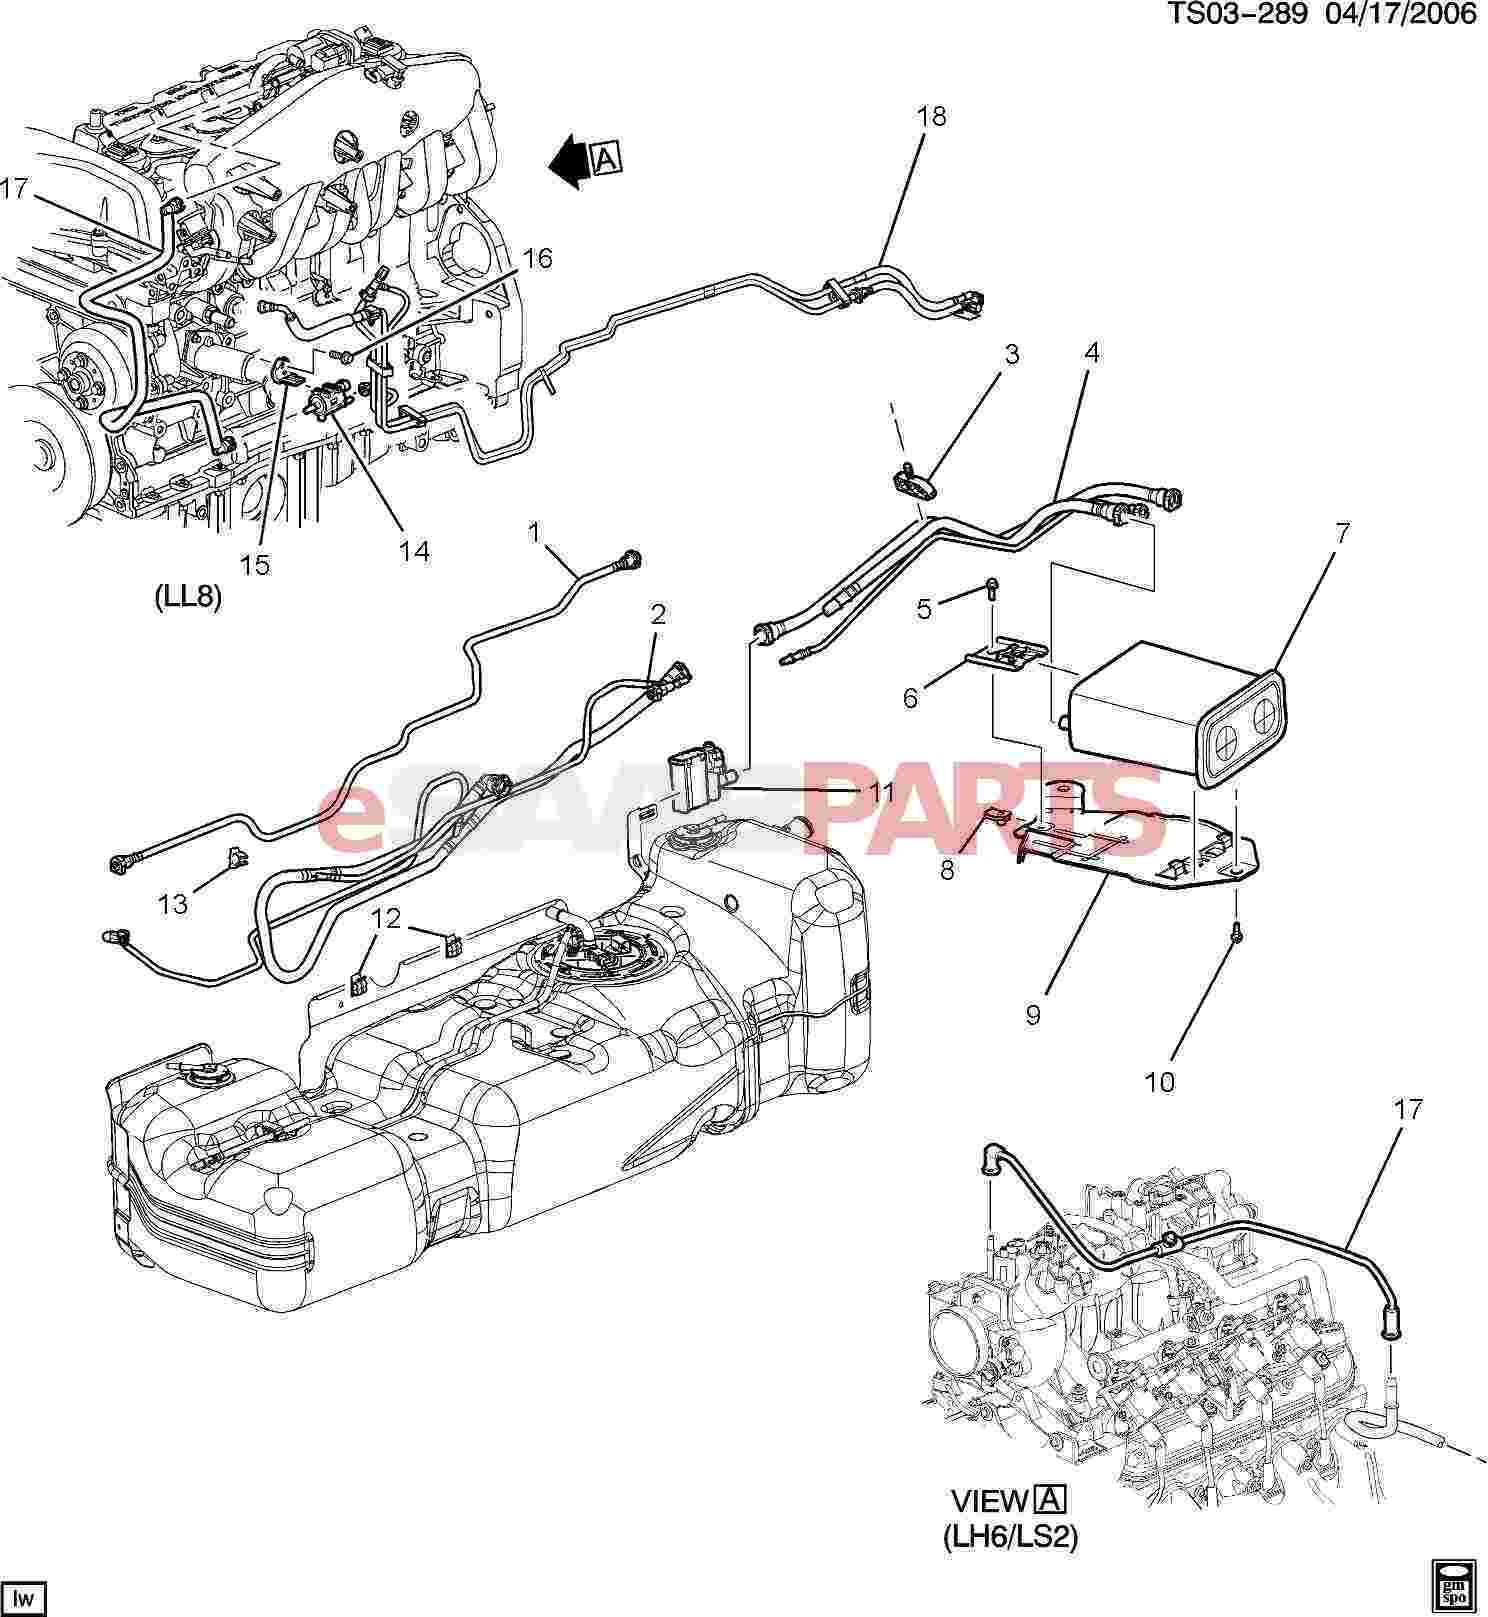 Chevrolet Trailblazer Engine Diagram